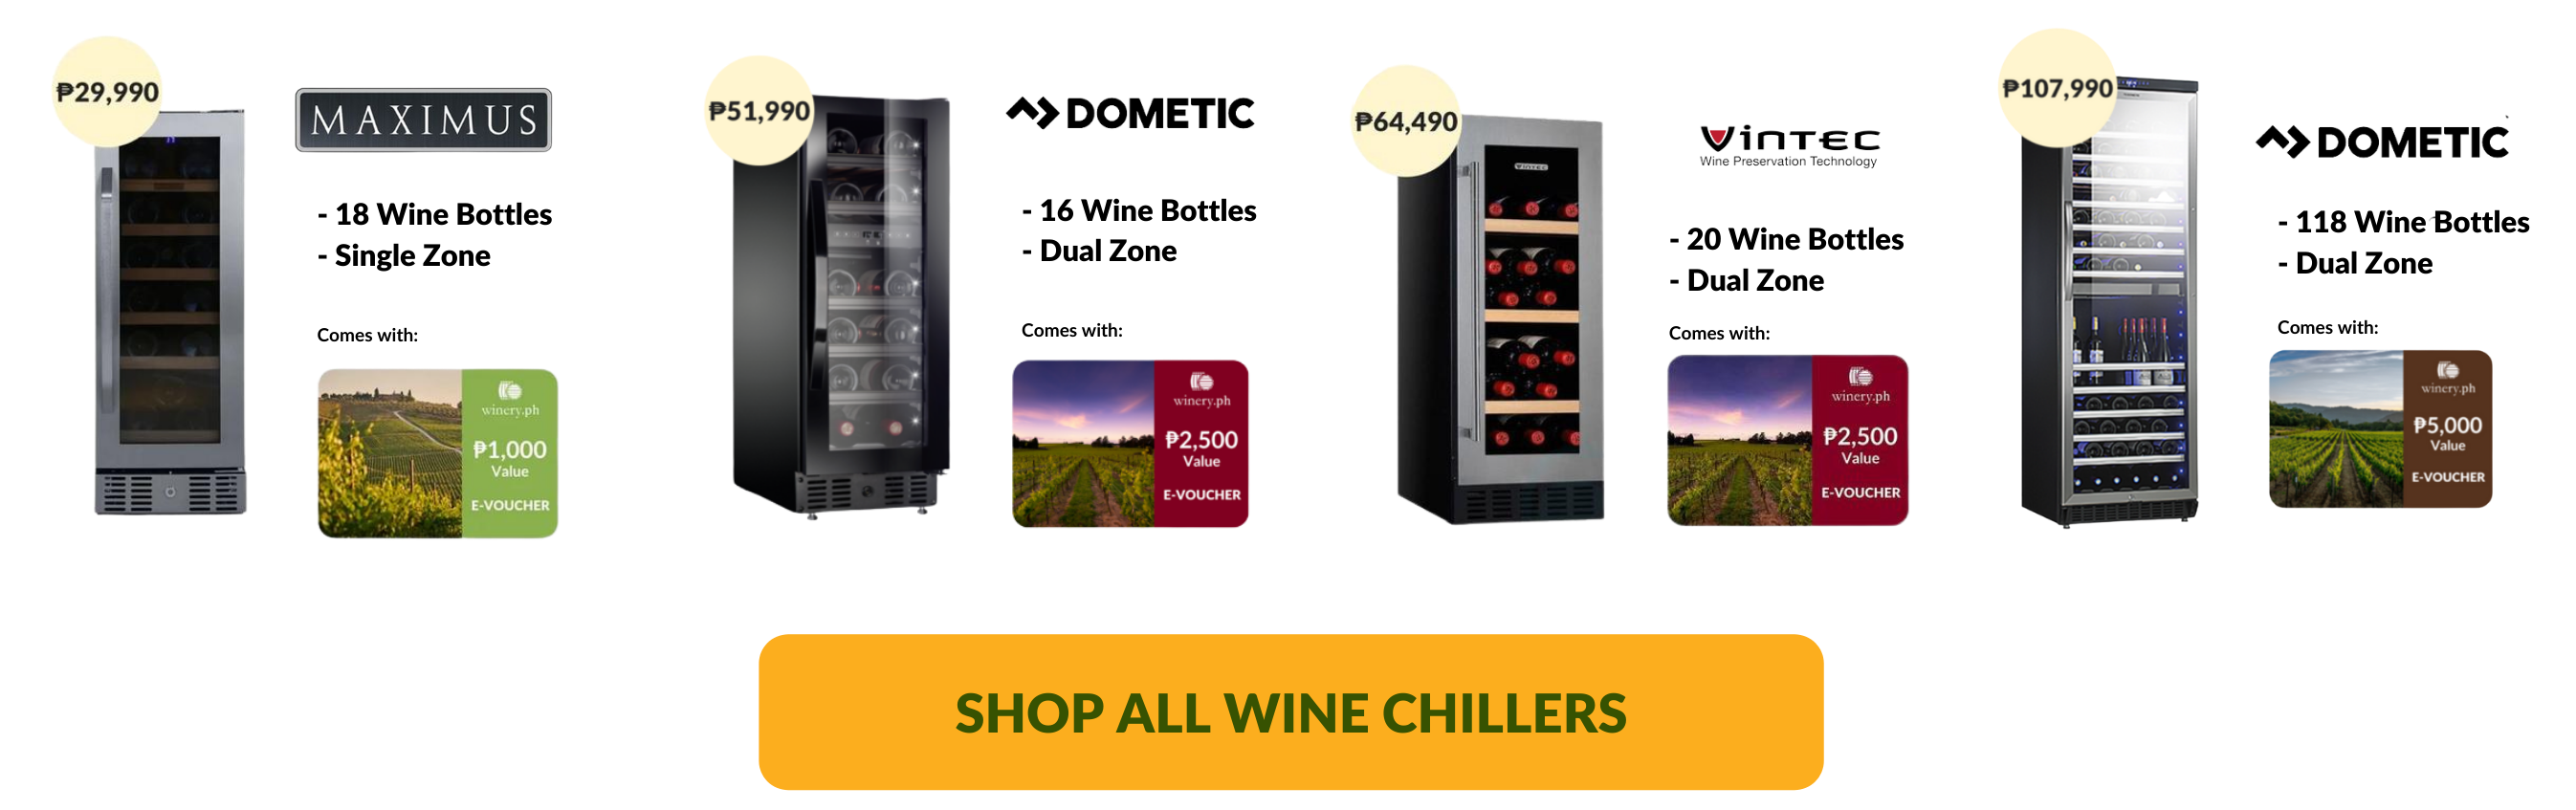 shop wine chillers in the philippines